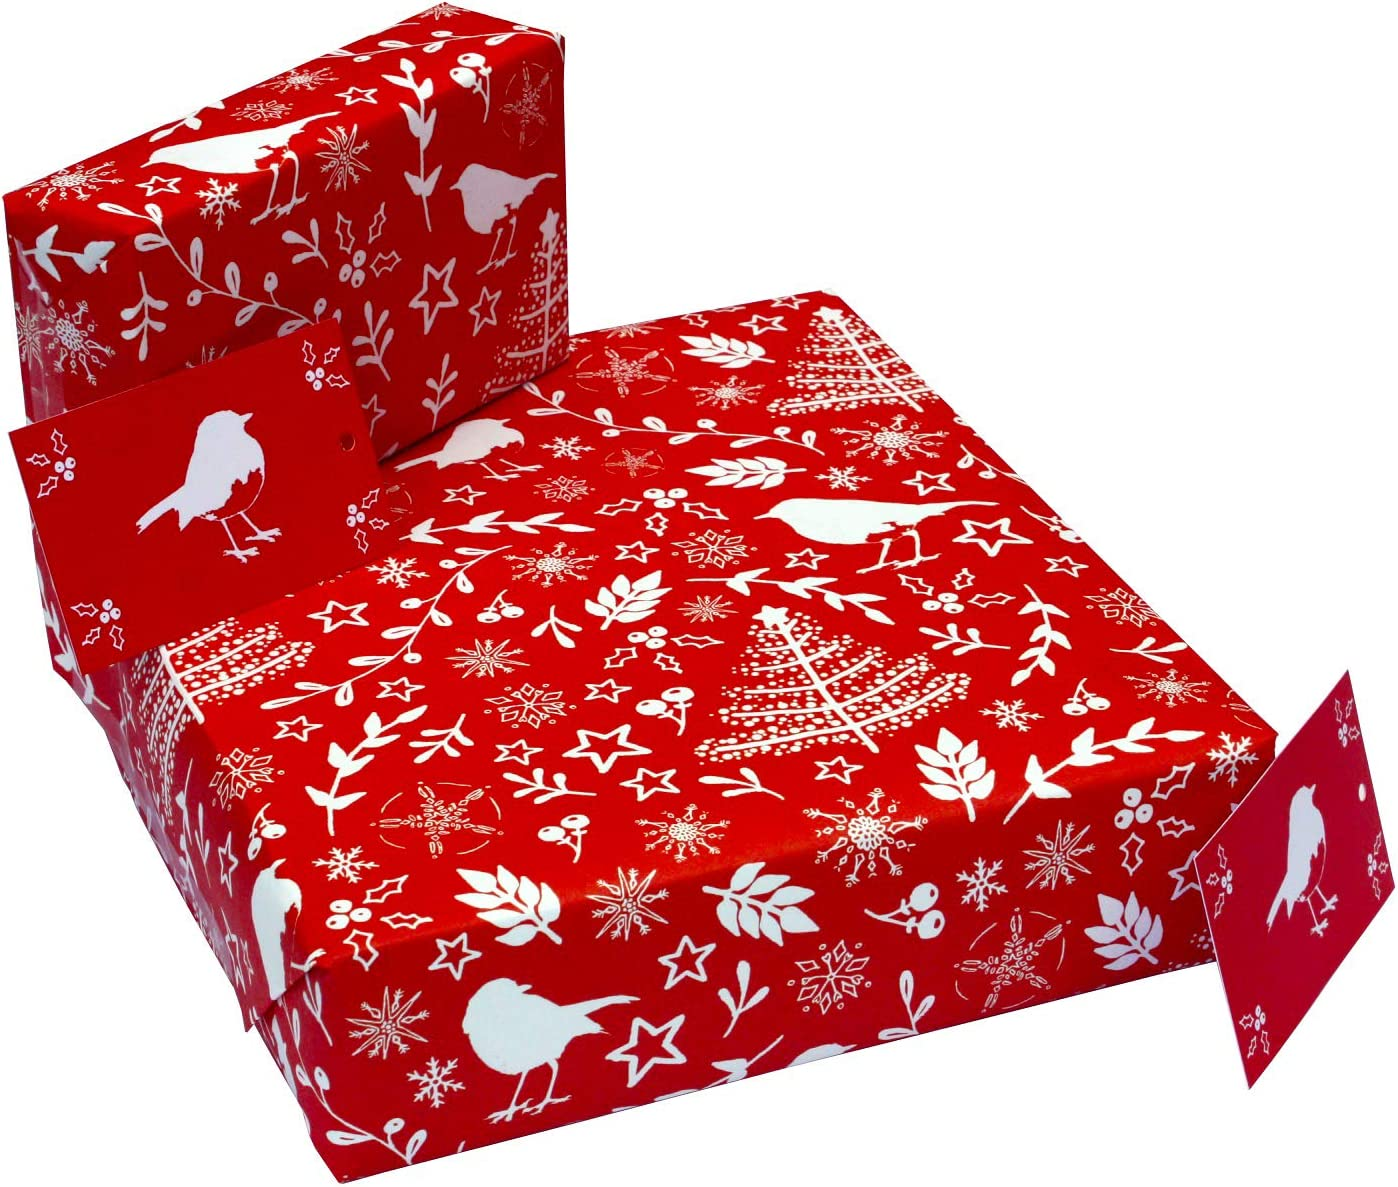 Christmas Blue Winter Wonderland Xmas Wrapping Paper Gift Wrap 100/% Recycled